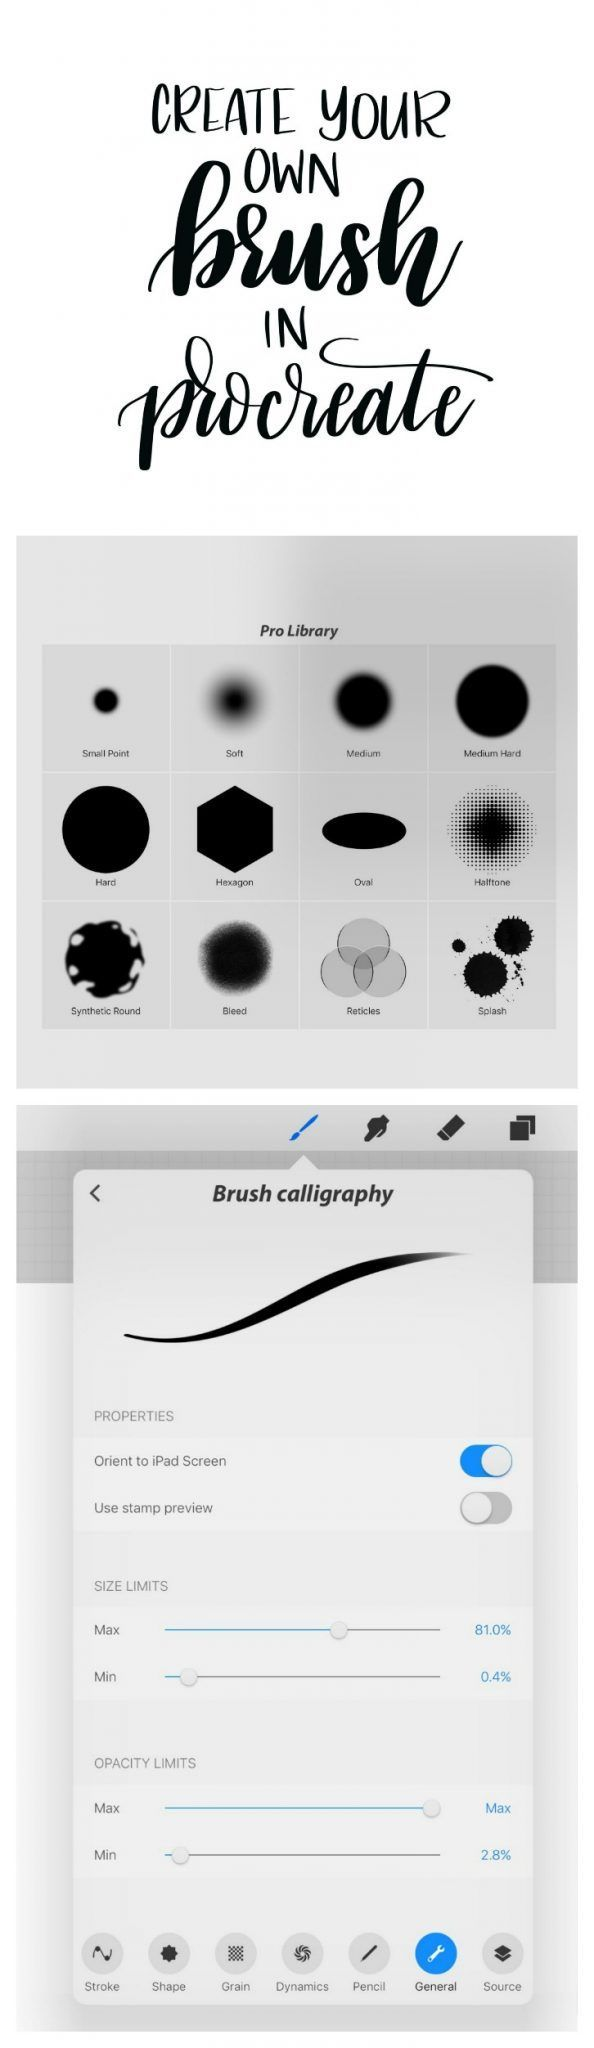 creating a brush lettering brush in proceate is part of Ipad lettering procreate - Creating a Brush Lettering Brush in Proceate Digitalart Beginner